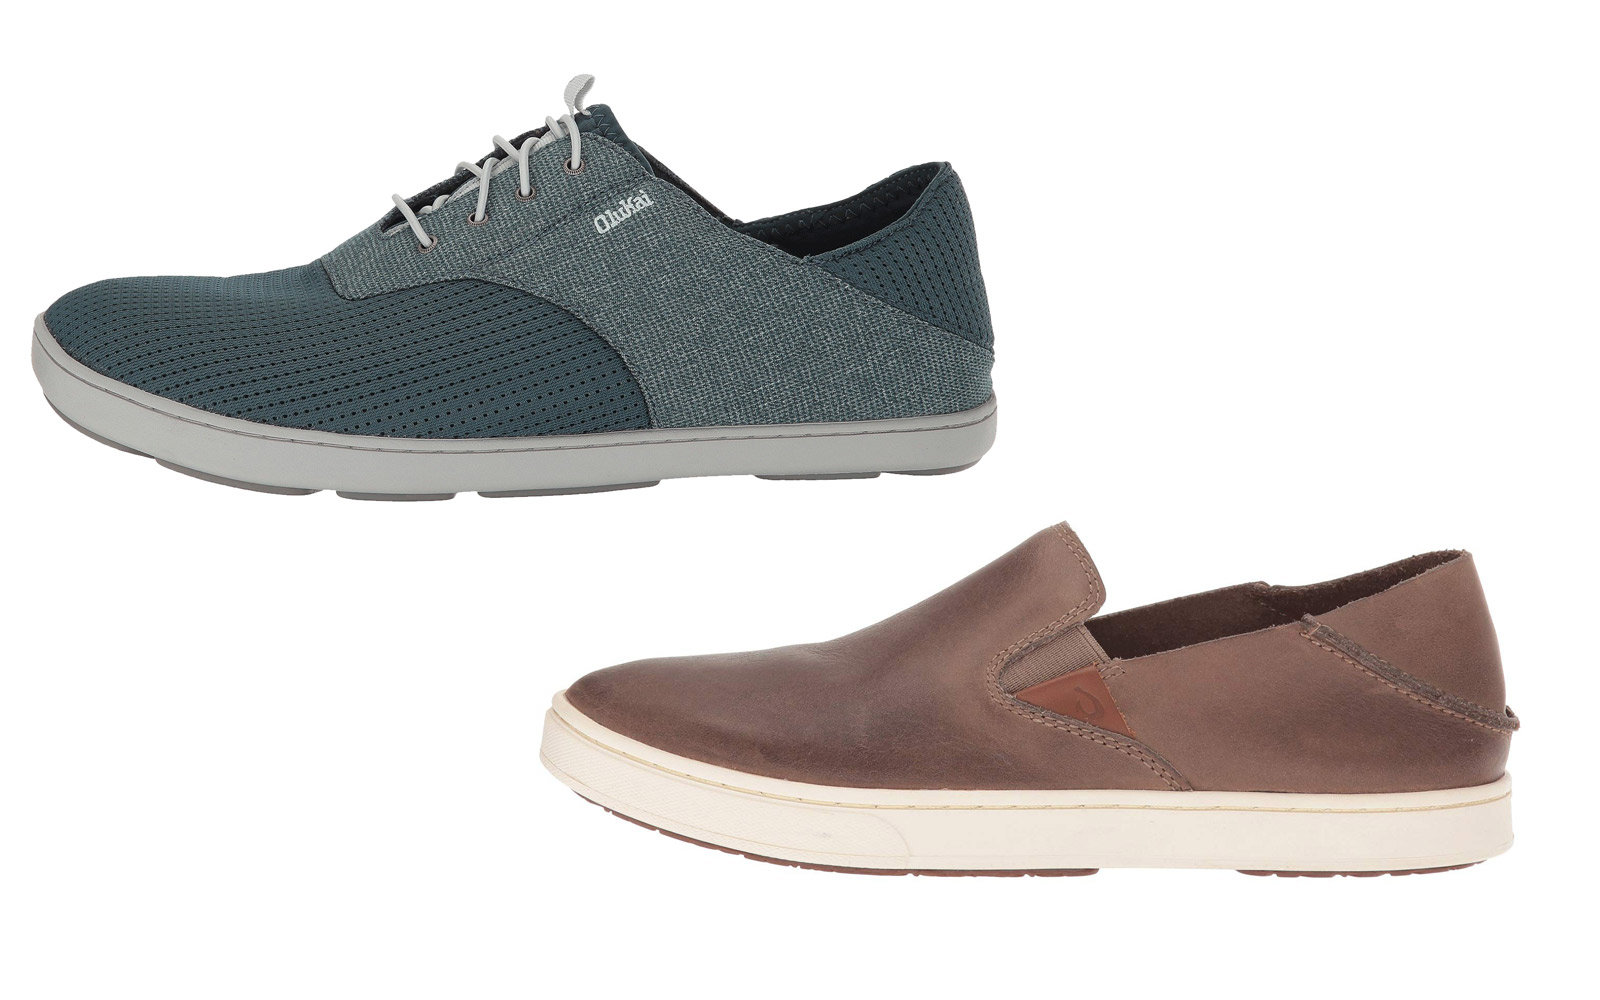 91ab0da31 OluKai. best comfort shoes brands olukai. Courtesy of Zappos